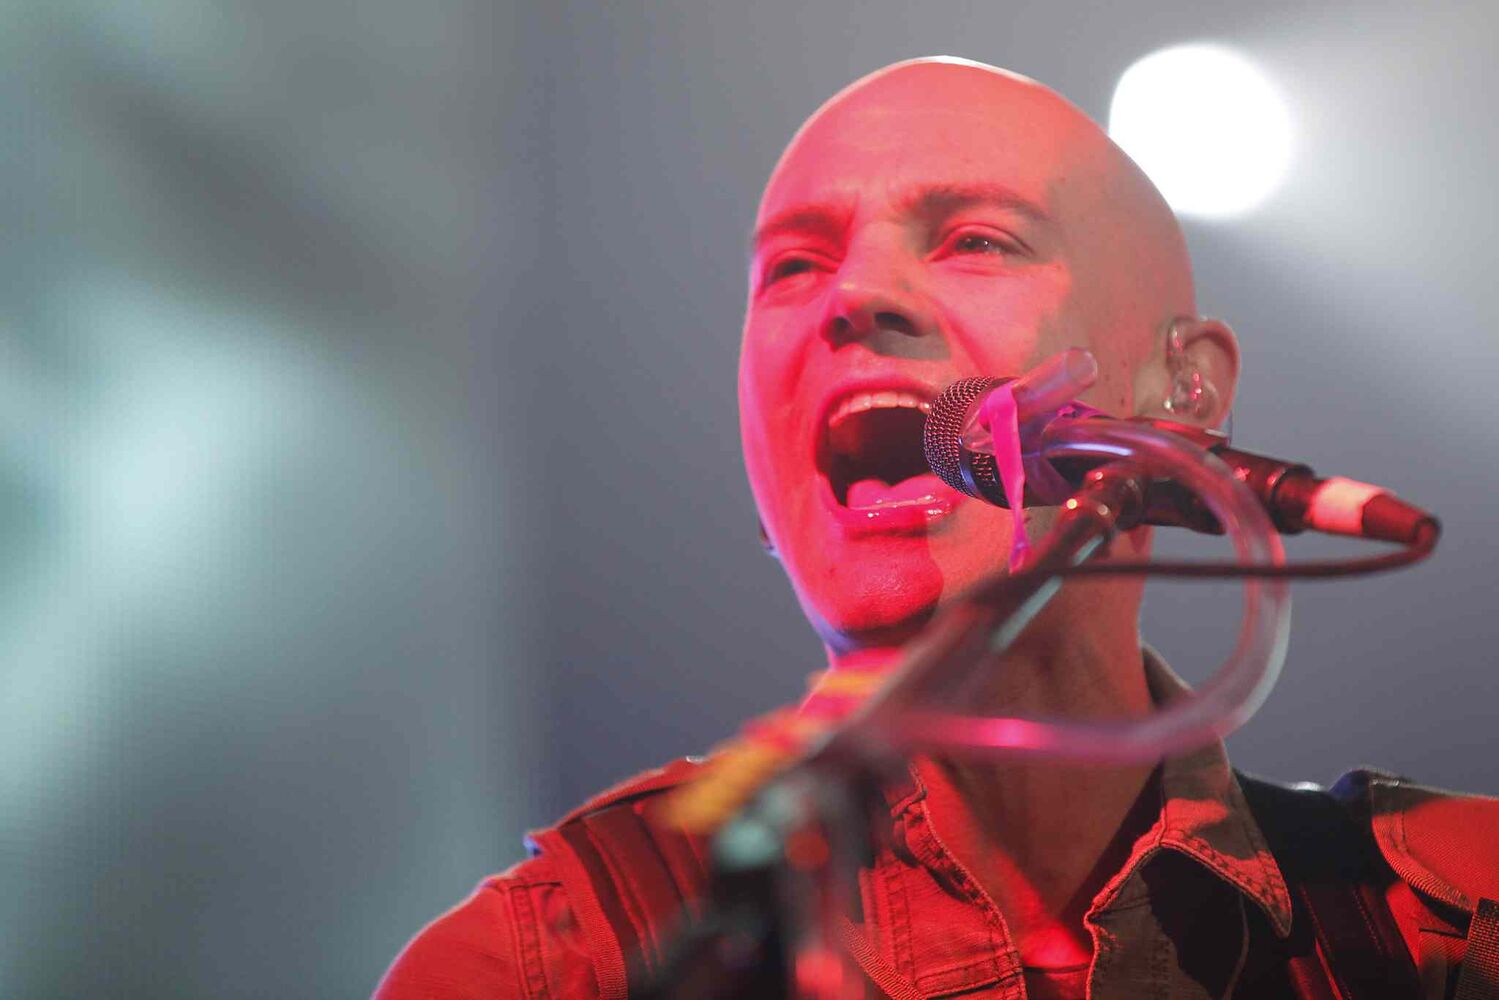 Hedley guitarist David Rosin performs with the band Tuesday. (John Woods / Winnipeg Free Press)